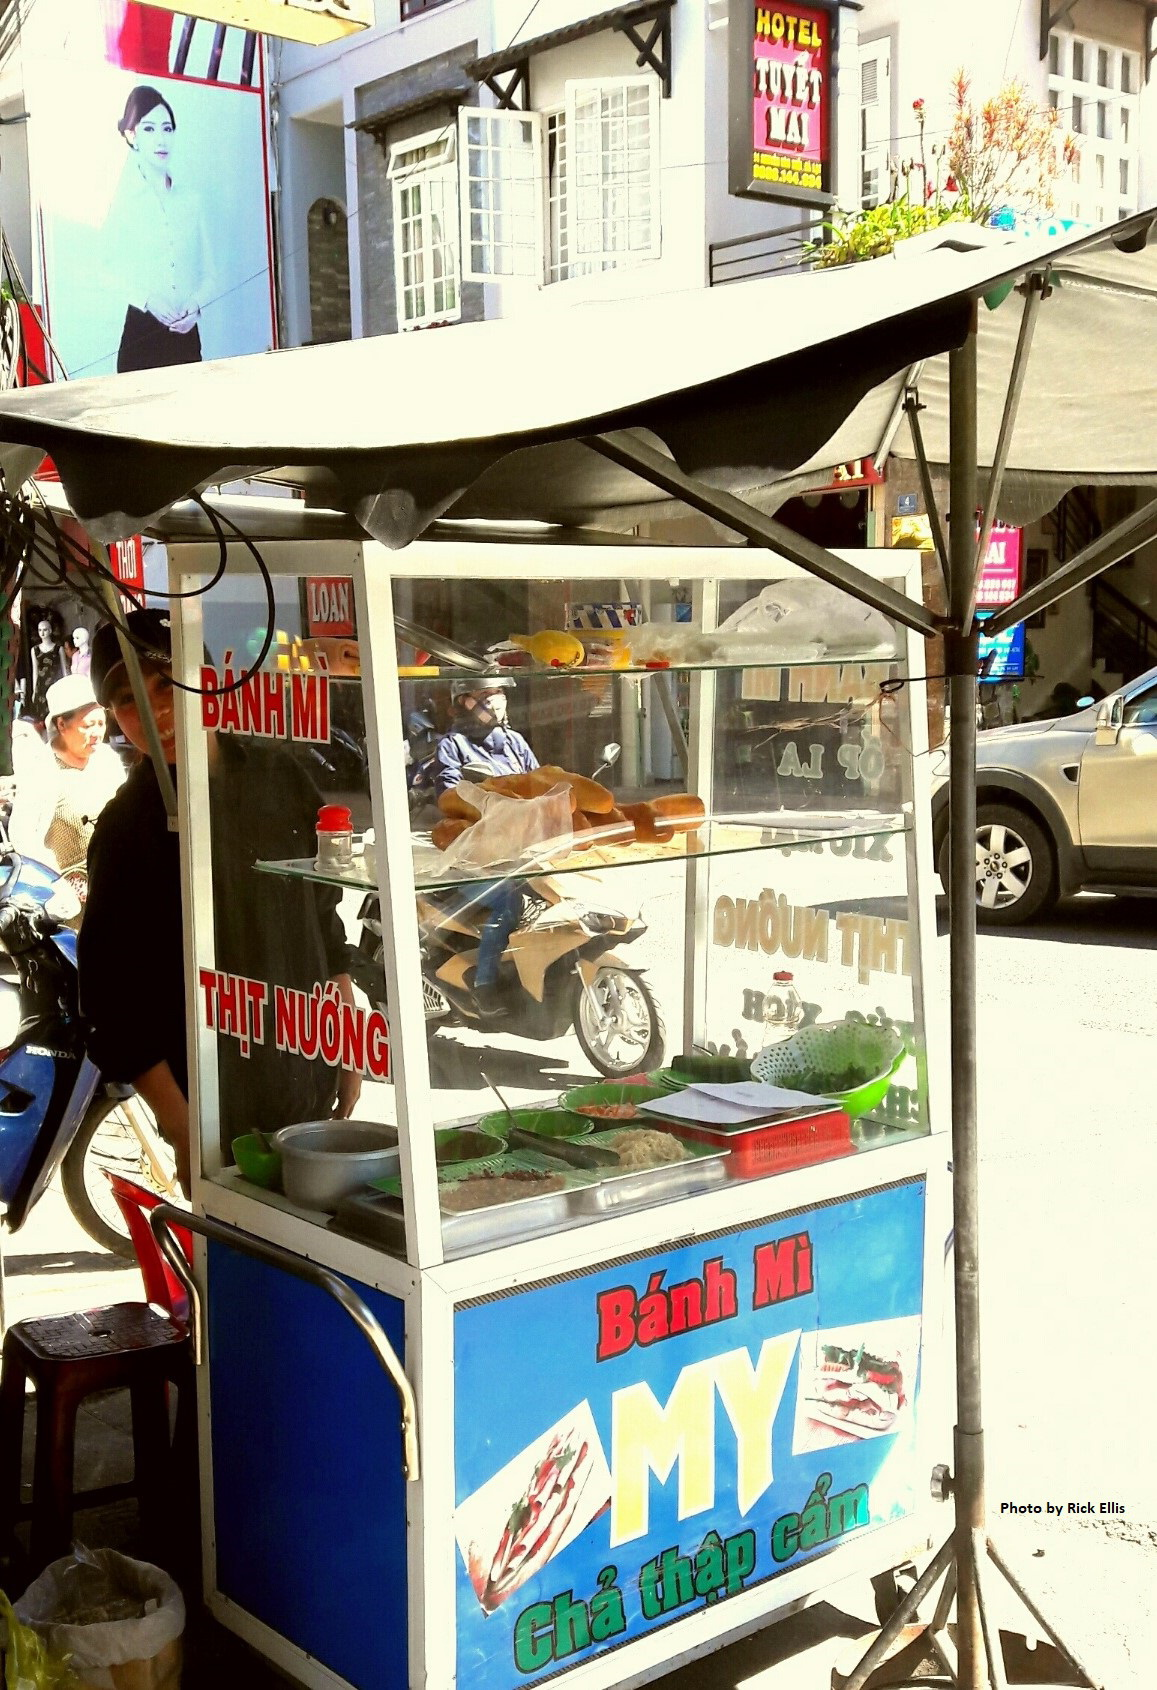 Local Banh Mi vendor and her cart